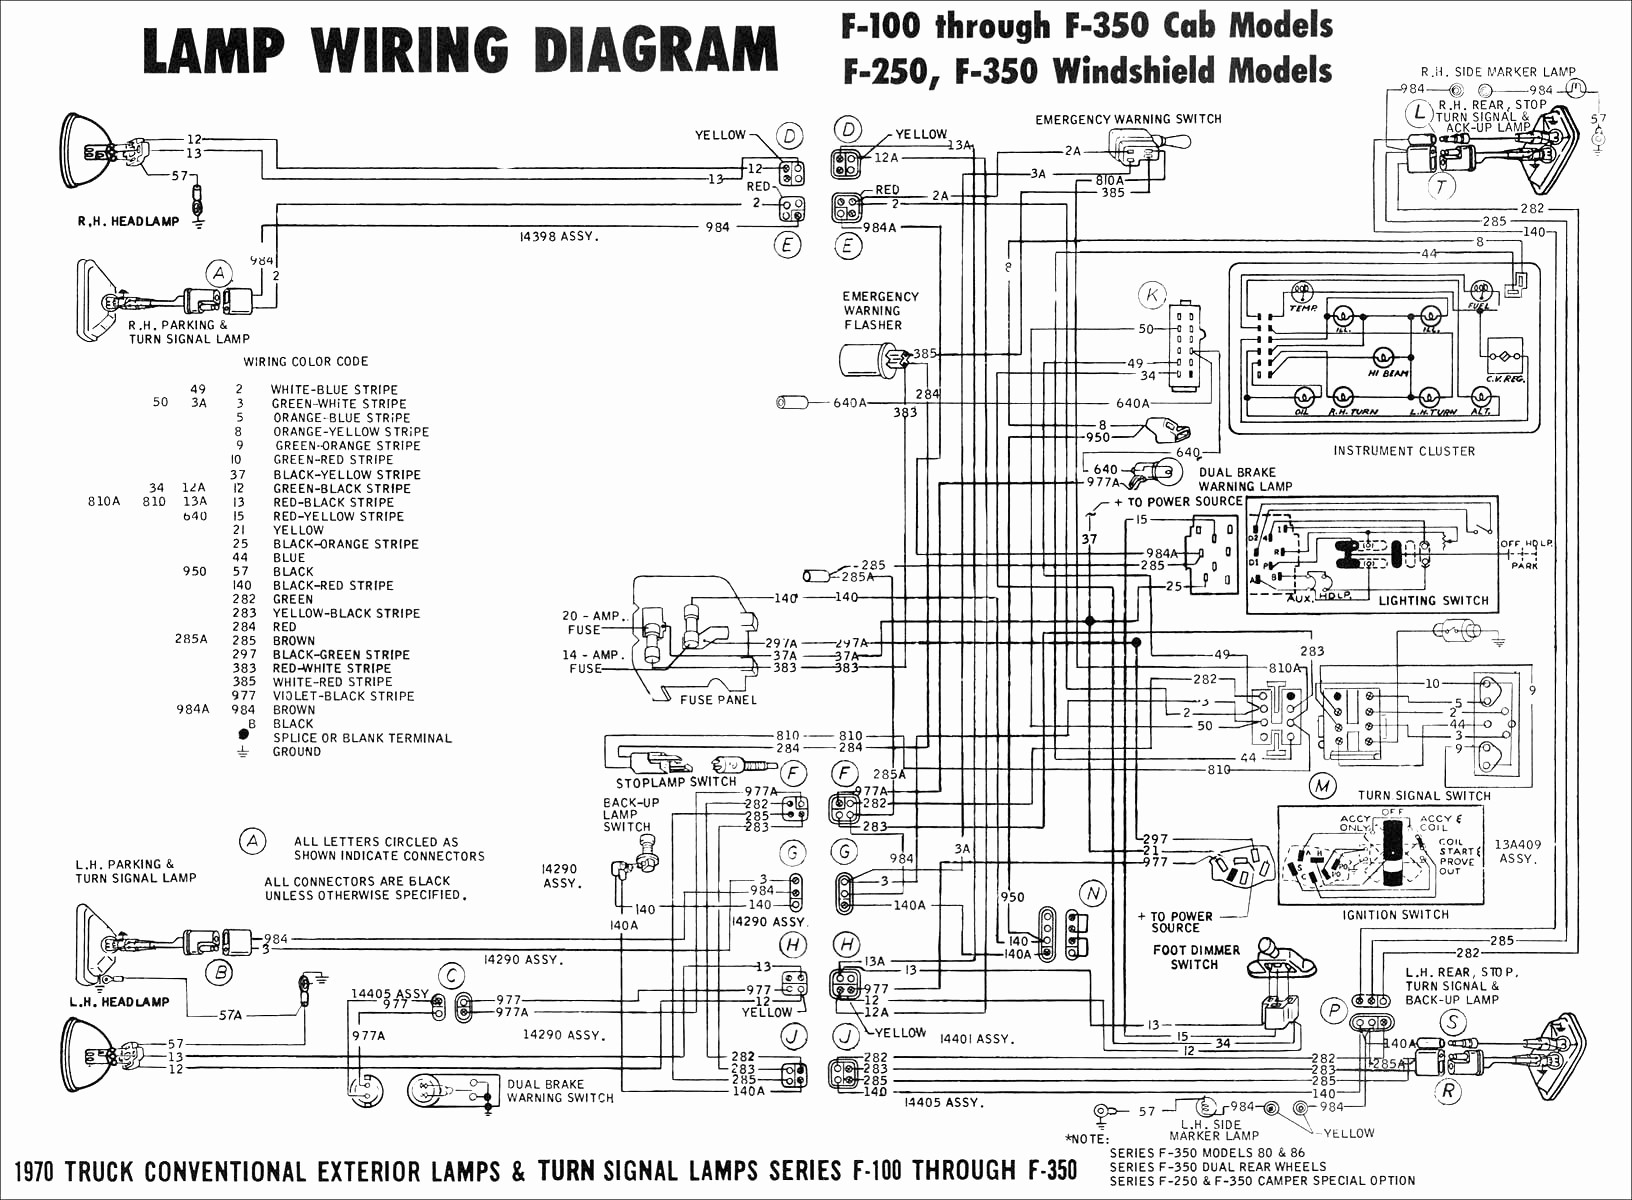 Wiring Diagram For Twt 27 True True - Chrysler Pacifica Dvd Wiring Diagram  - ct90.tukune.jeanjaures37.fr | True Twt 27f Wiring Diagram |  | Wiring Diagram Resource